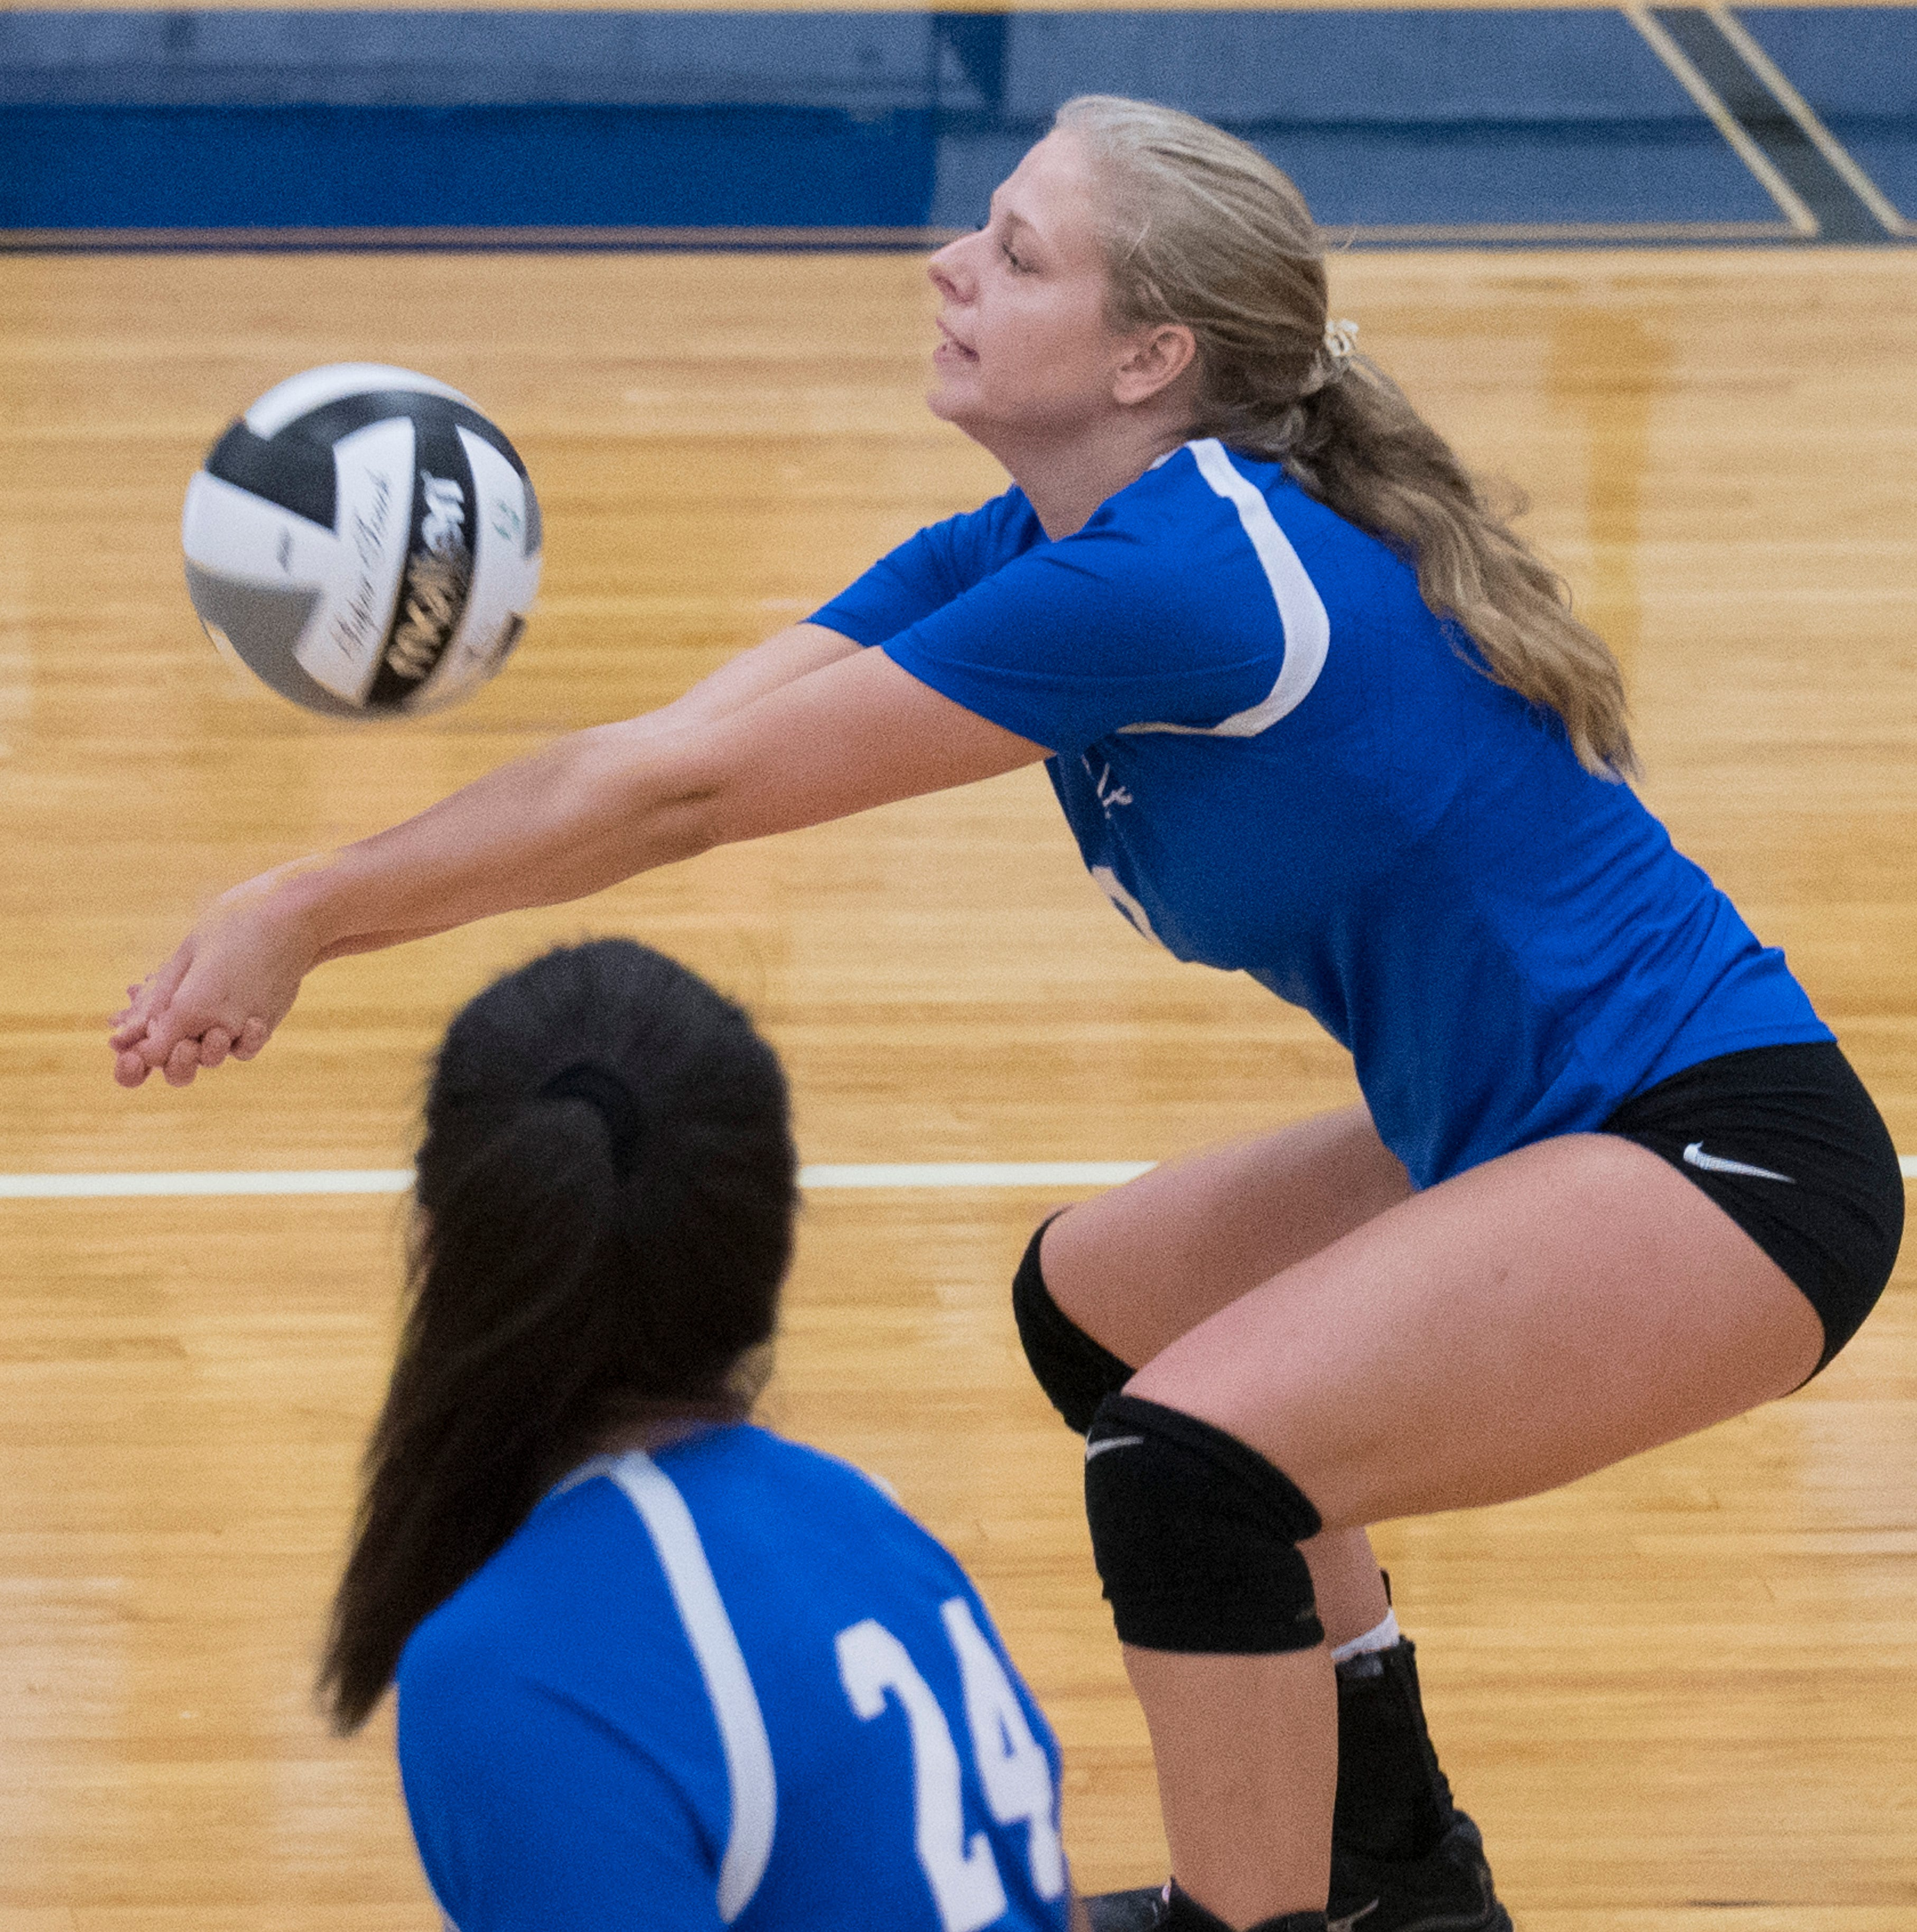 OHIO HS VOLLEYBALL: Tuesday sectional semifinal wrapup